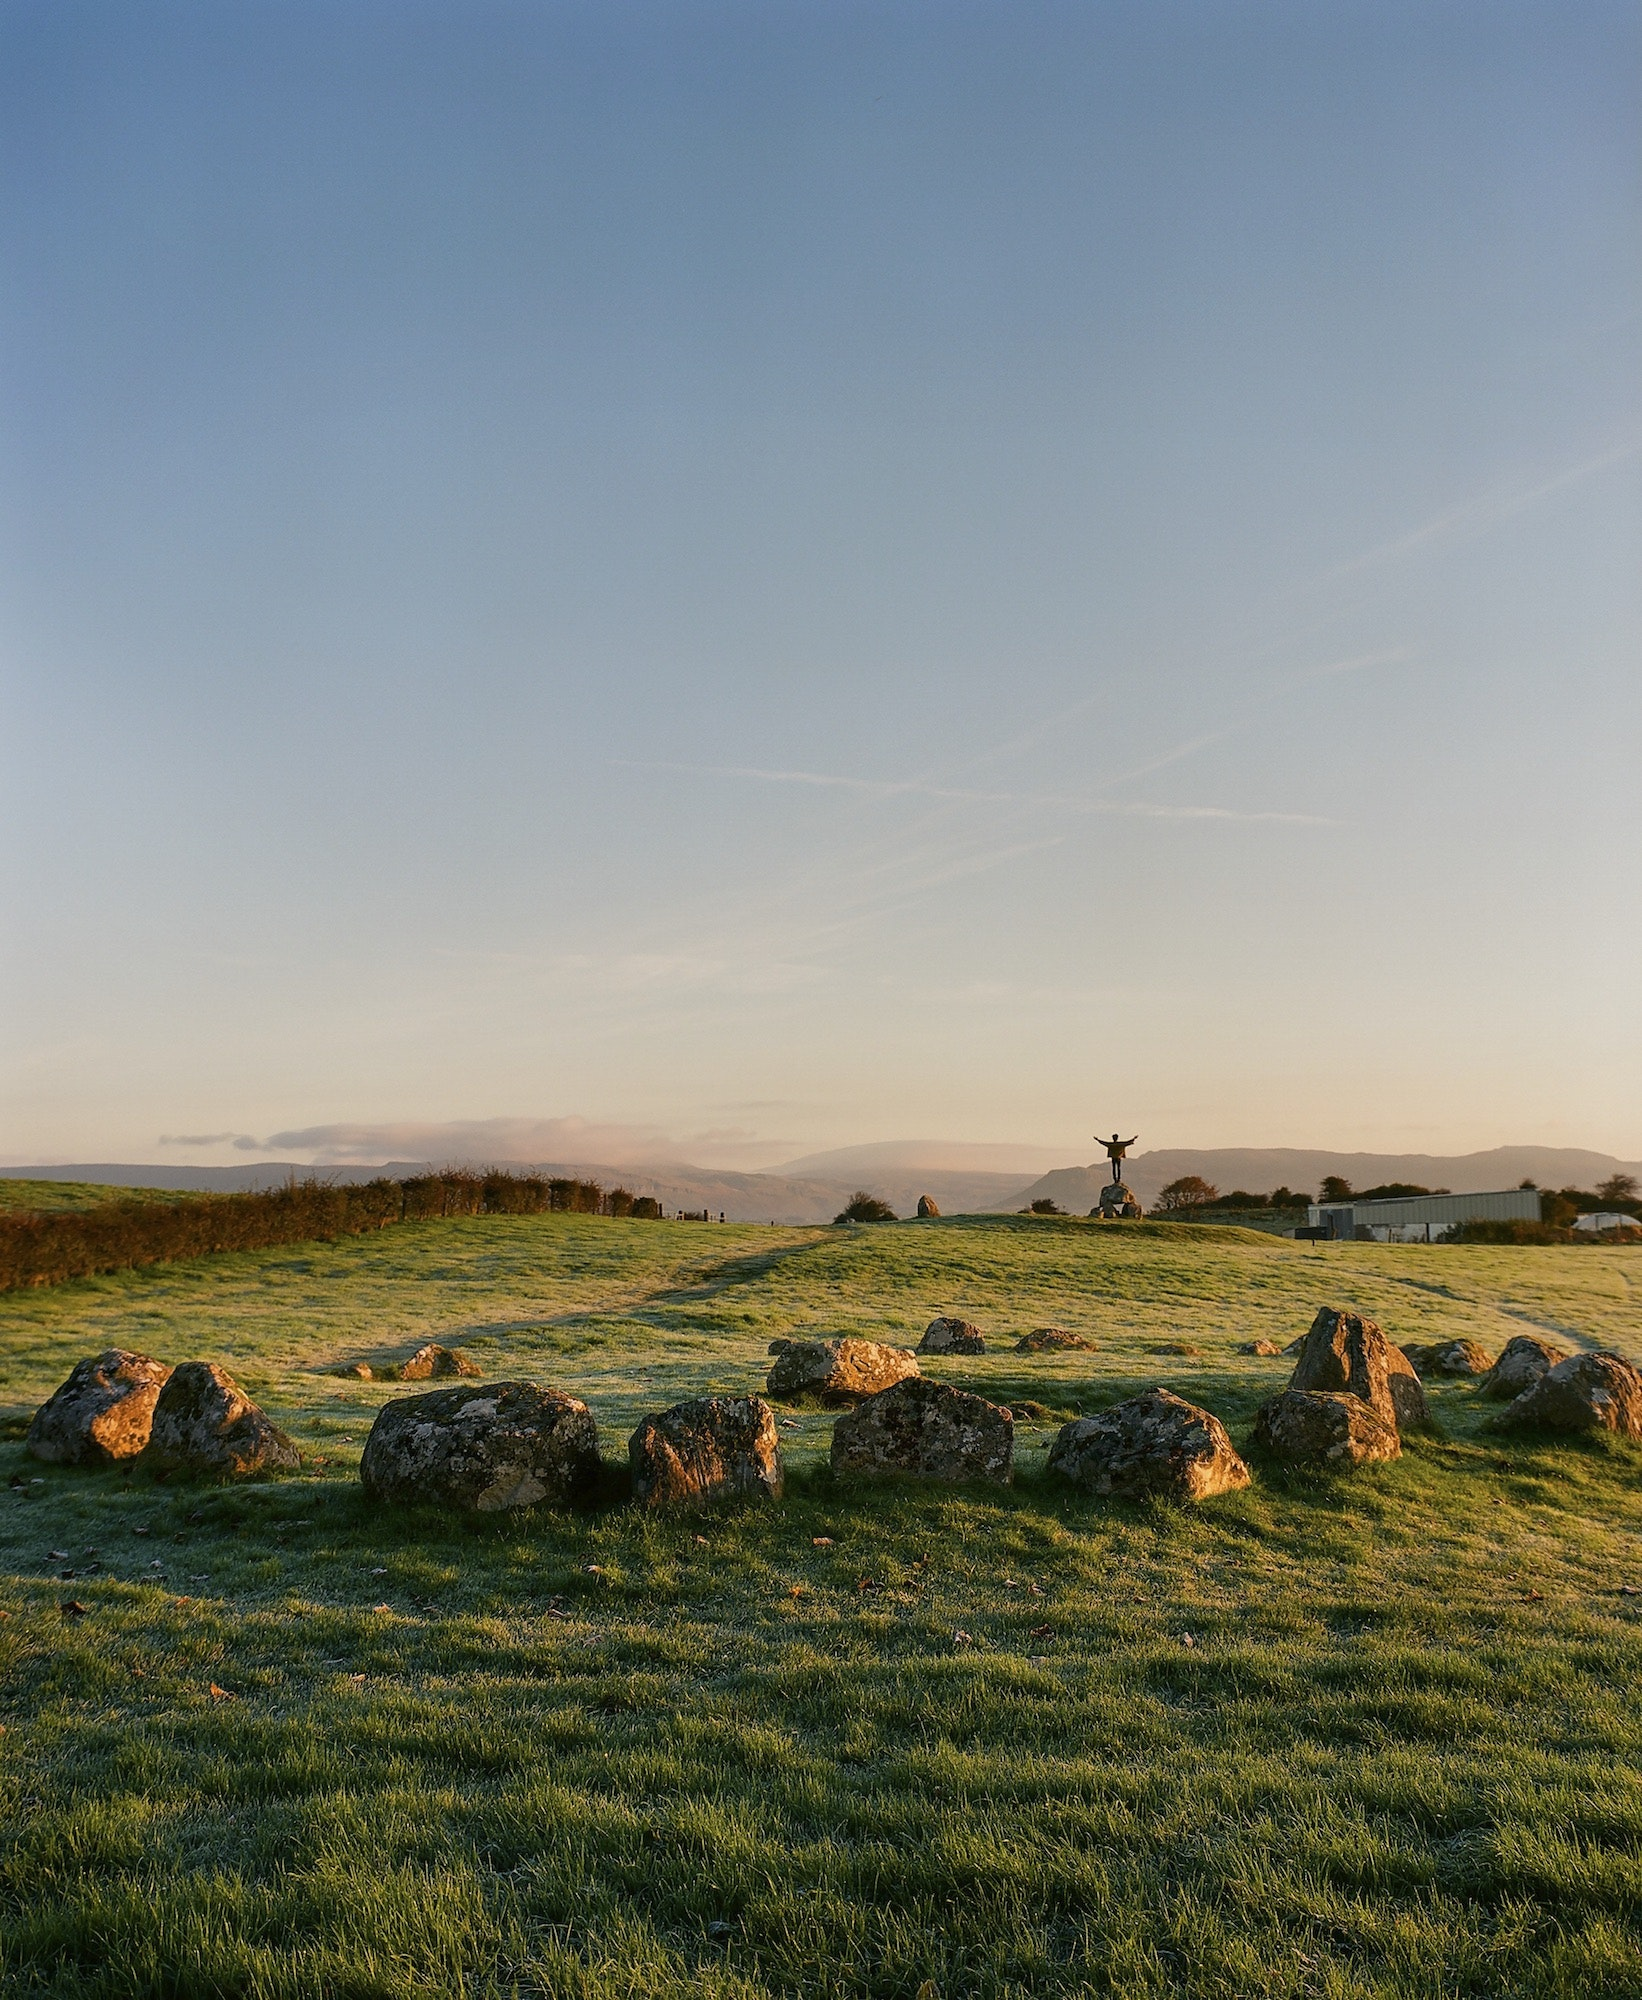 The Carrowmore Megalithic Cemetery, one of four passage tomb sites in Ireland, dates back to 3700 B.C.